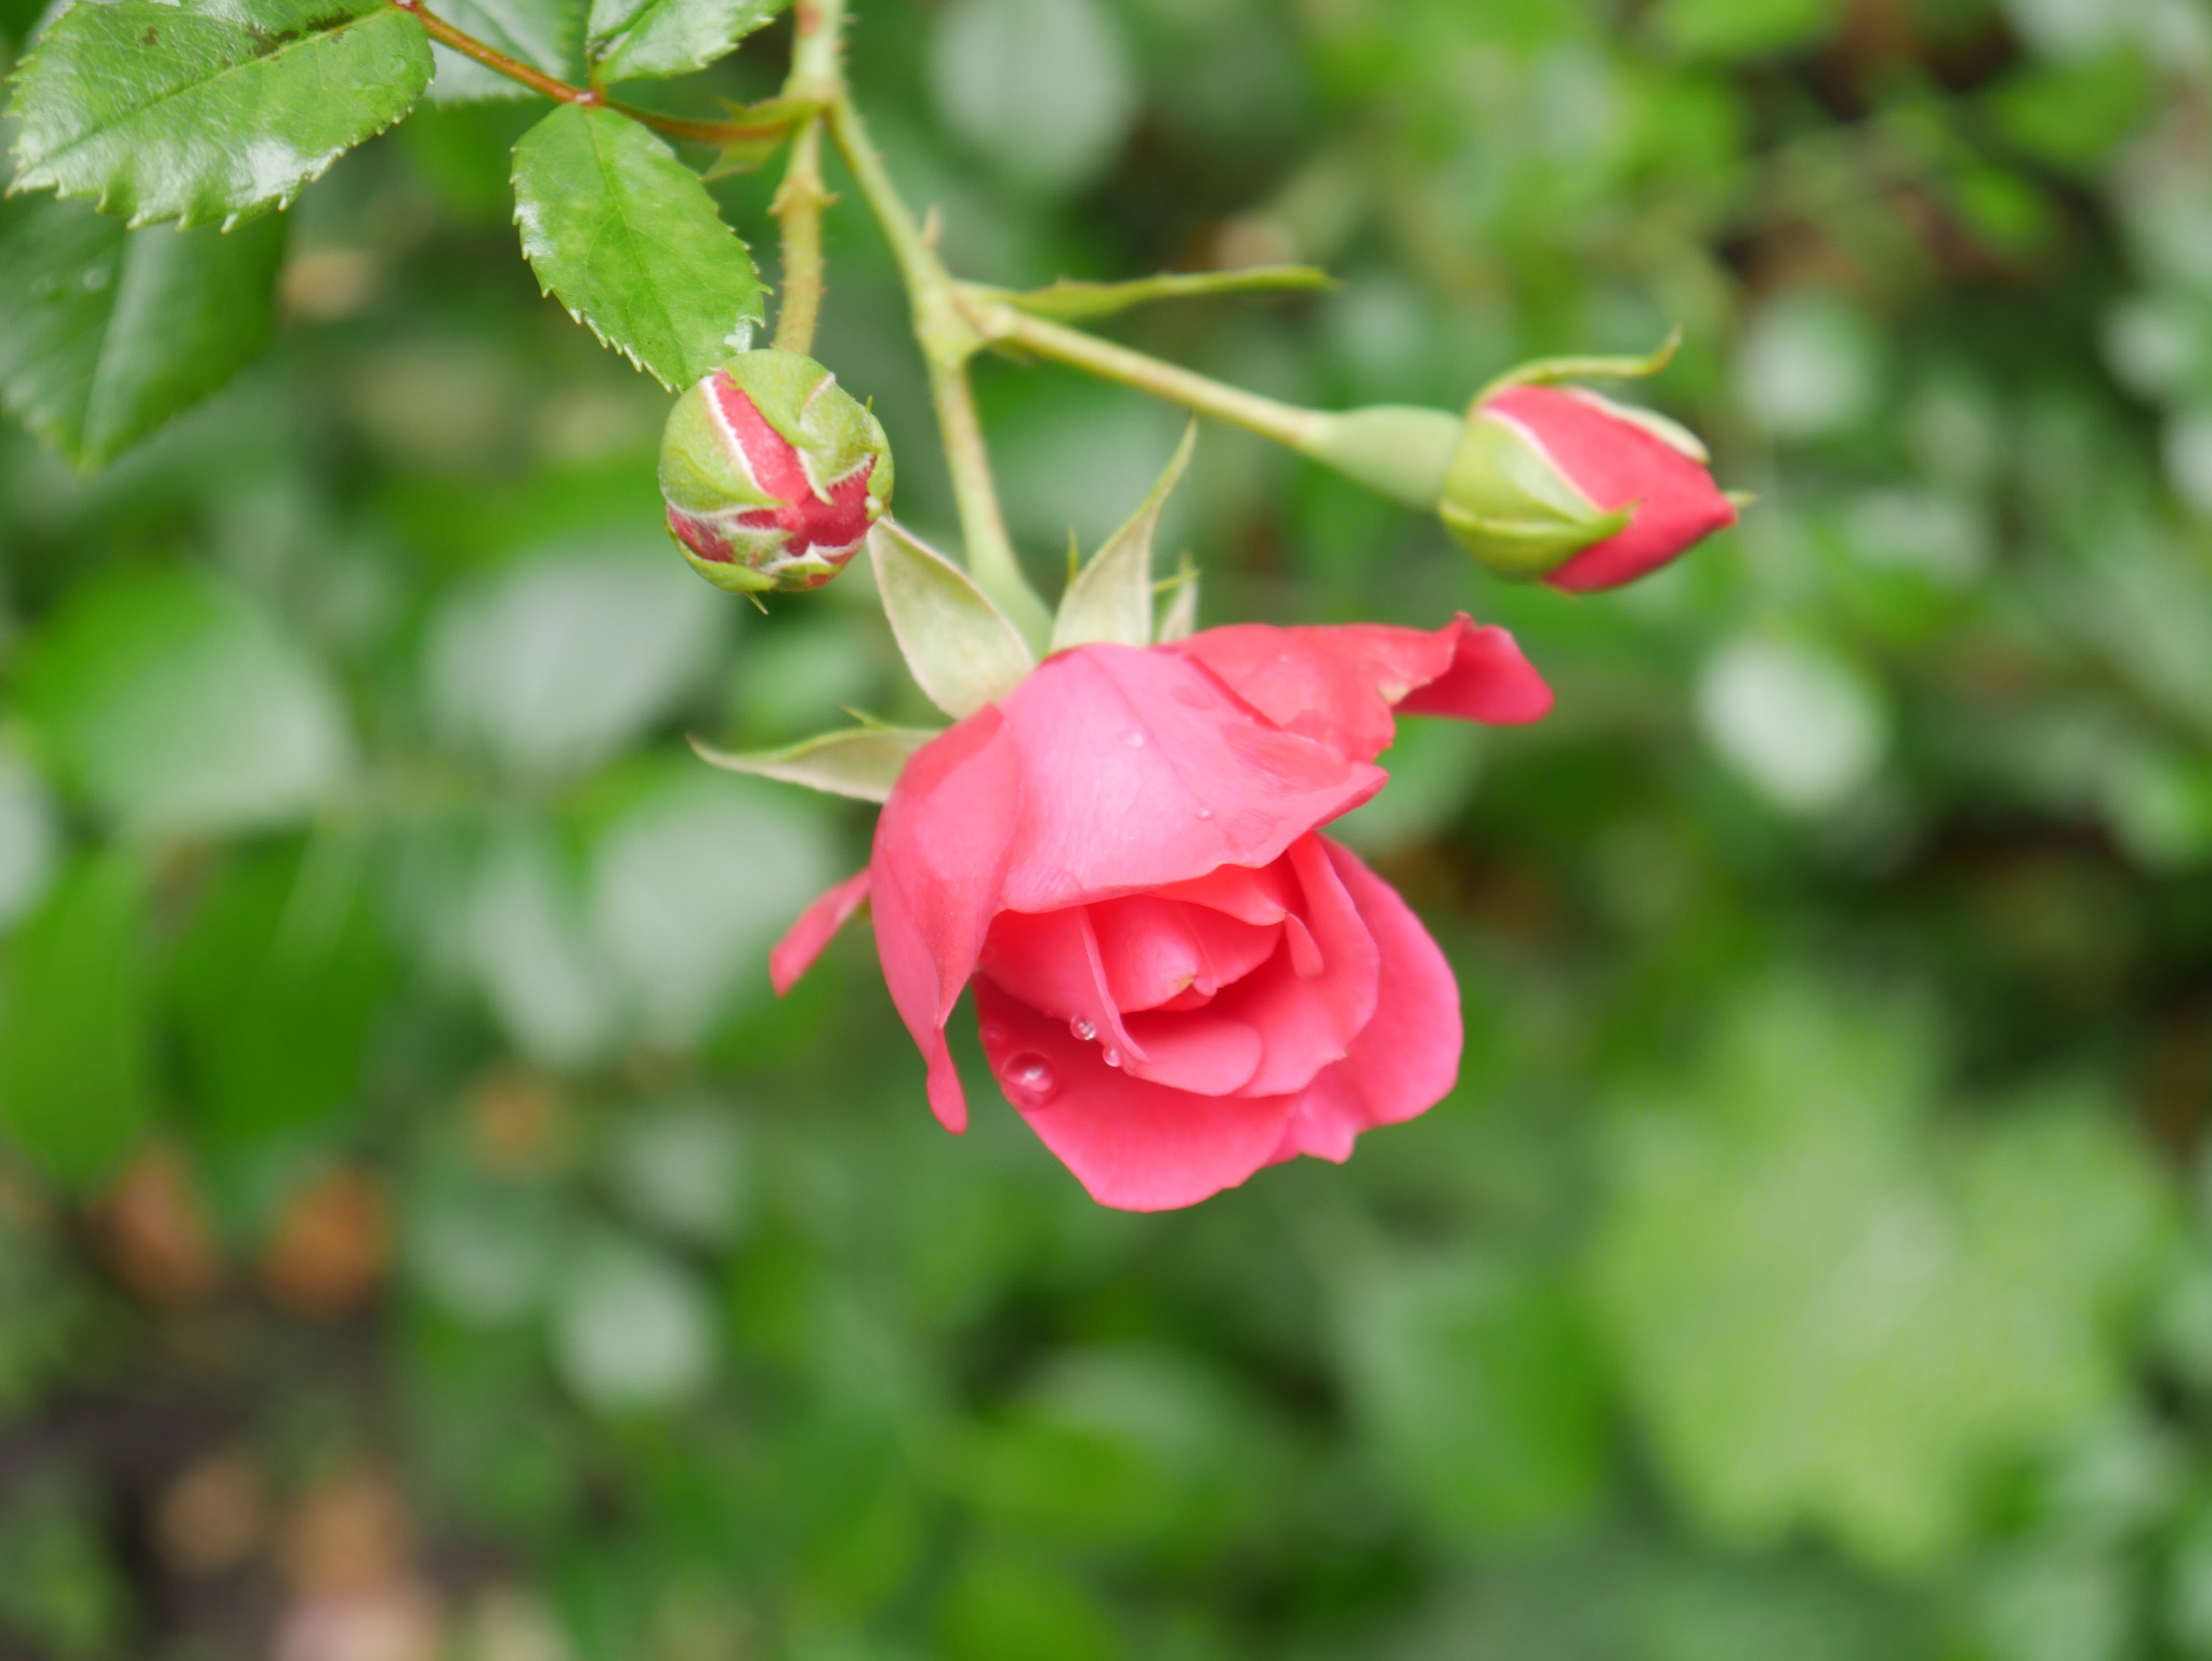 Free stock photo of close-up view, pink, rose, rose bloom